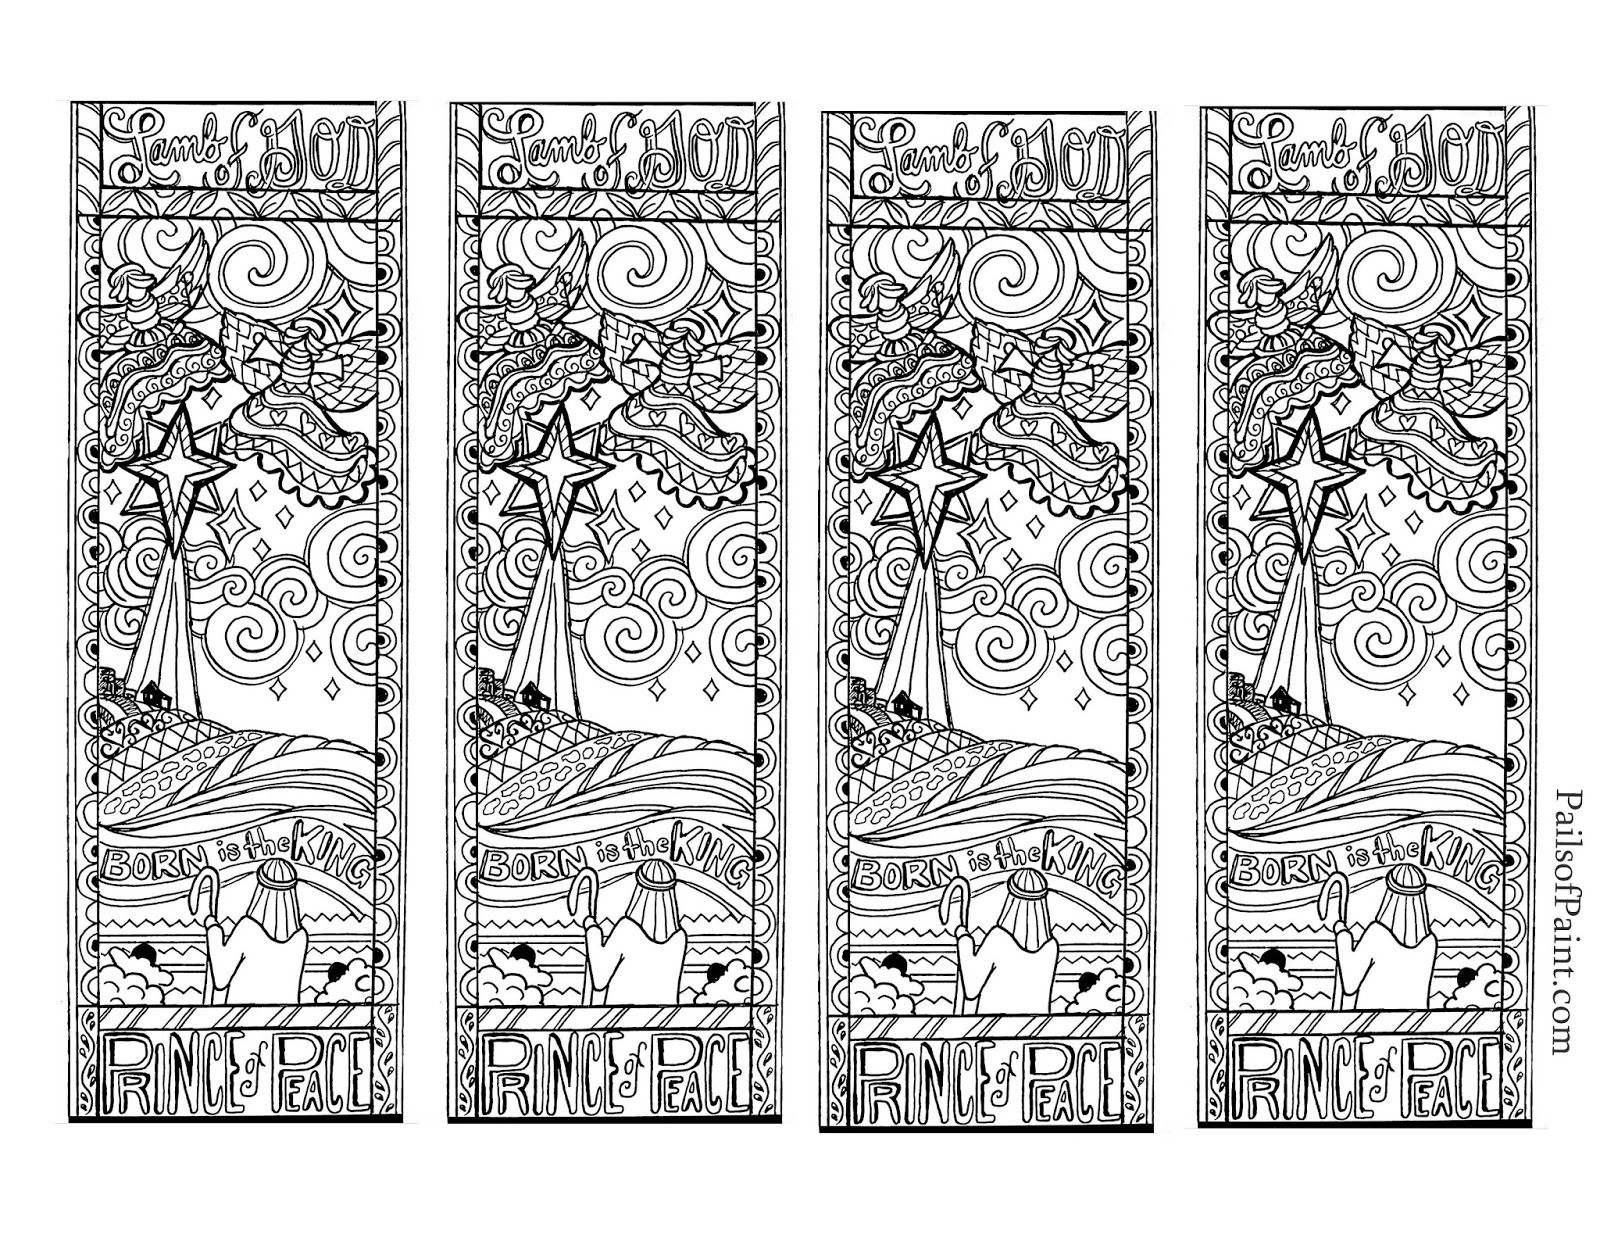 free printable dragon bookmarks to color - Google Search | Buy It ...